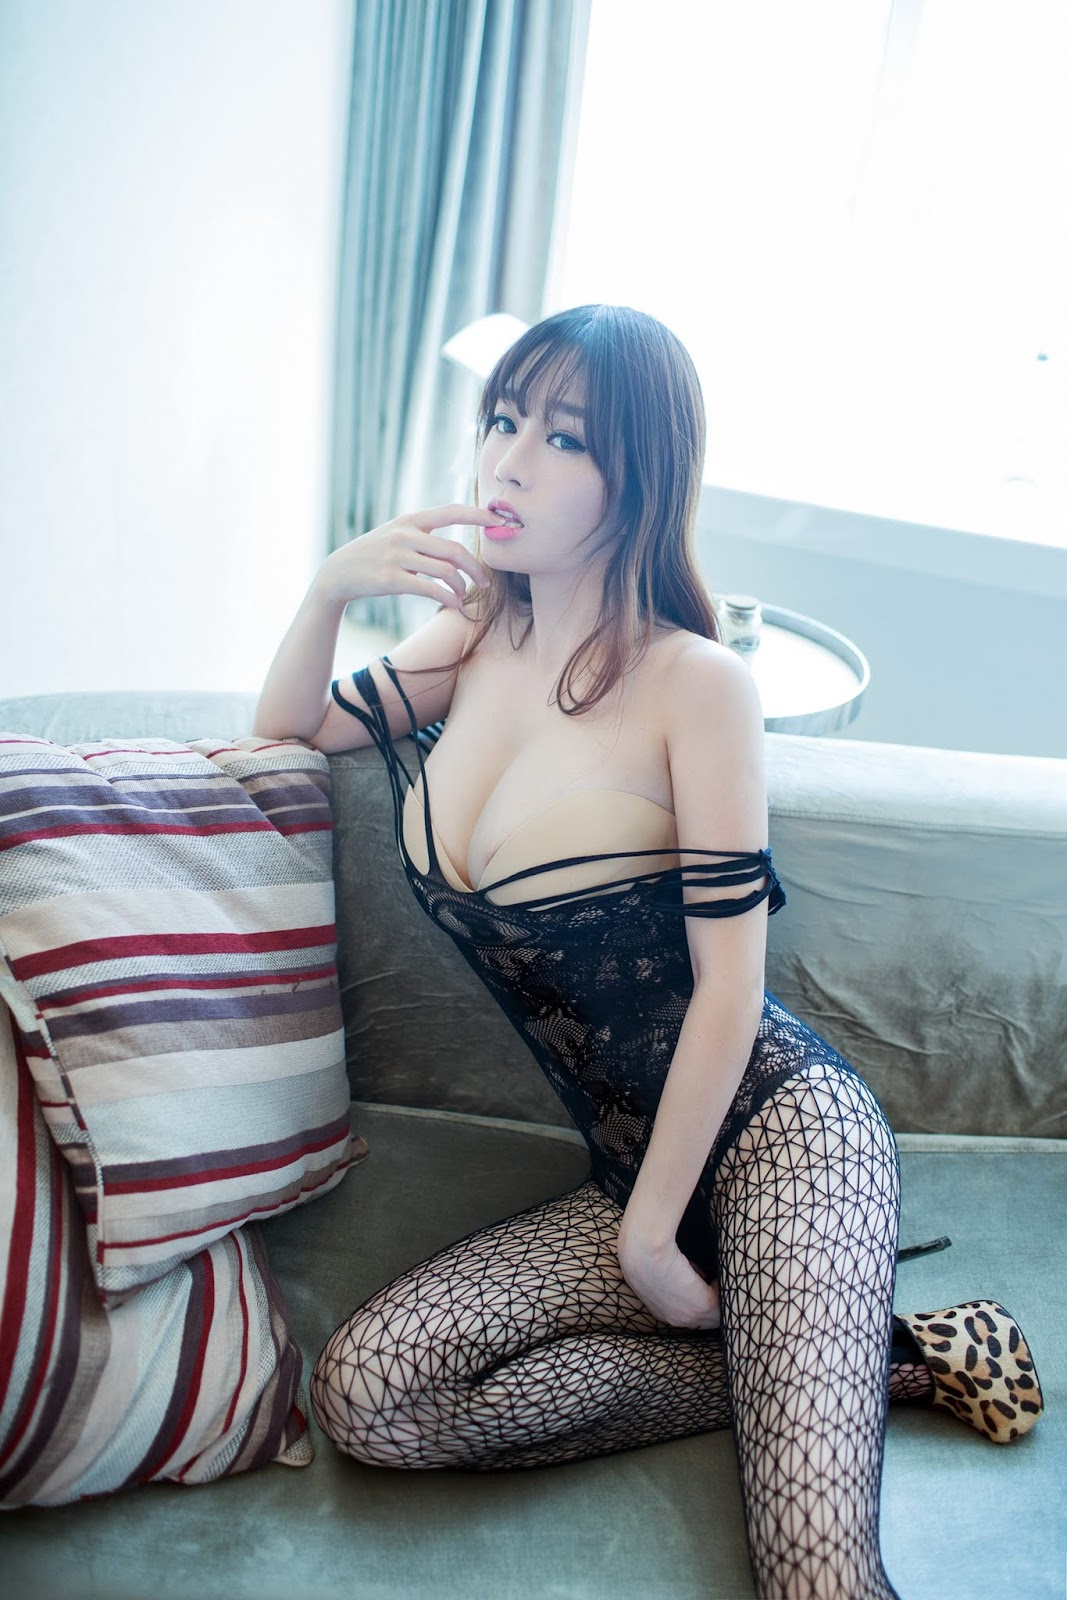 1%2B%252834%2529 - Hot Sexy TUIGIRL NO.43 Model Asian